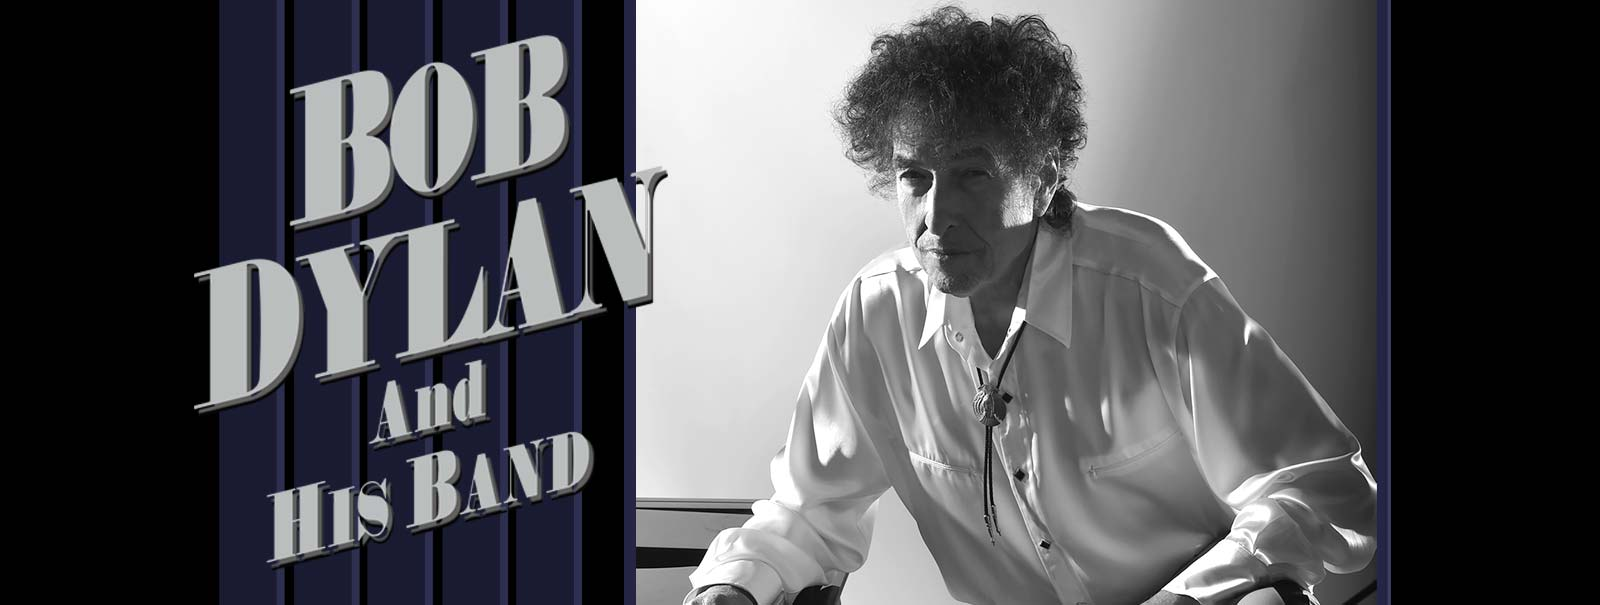 More Info - Bob Dylan and His Band